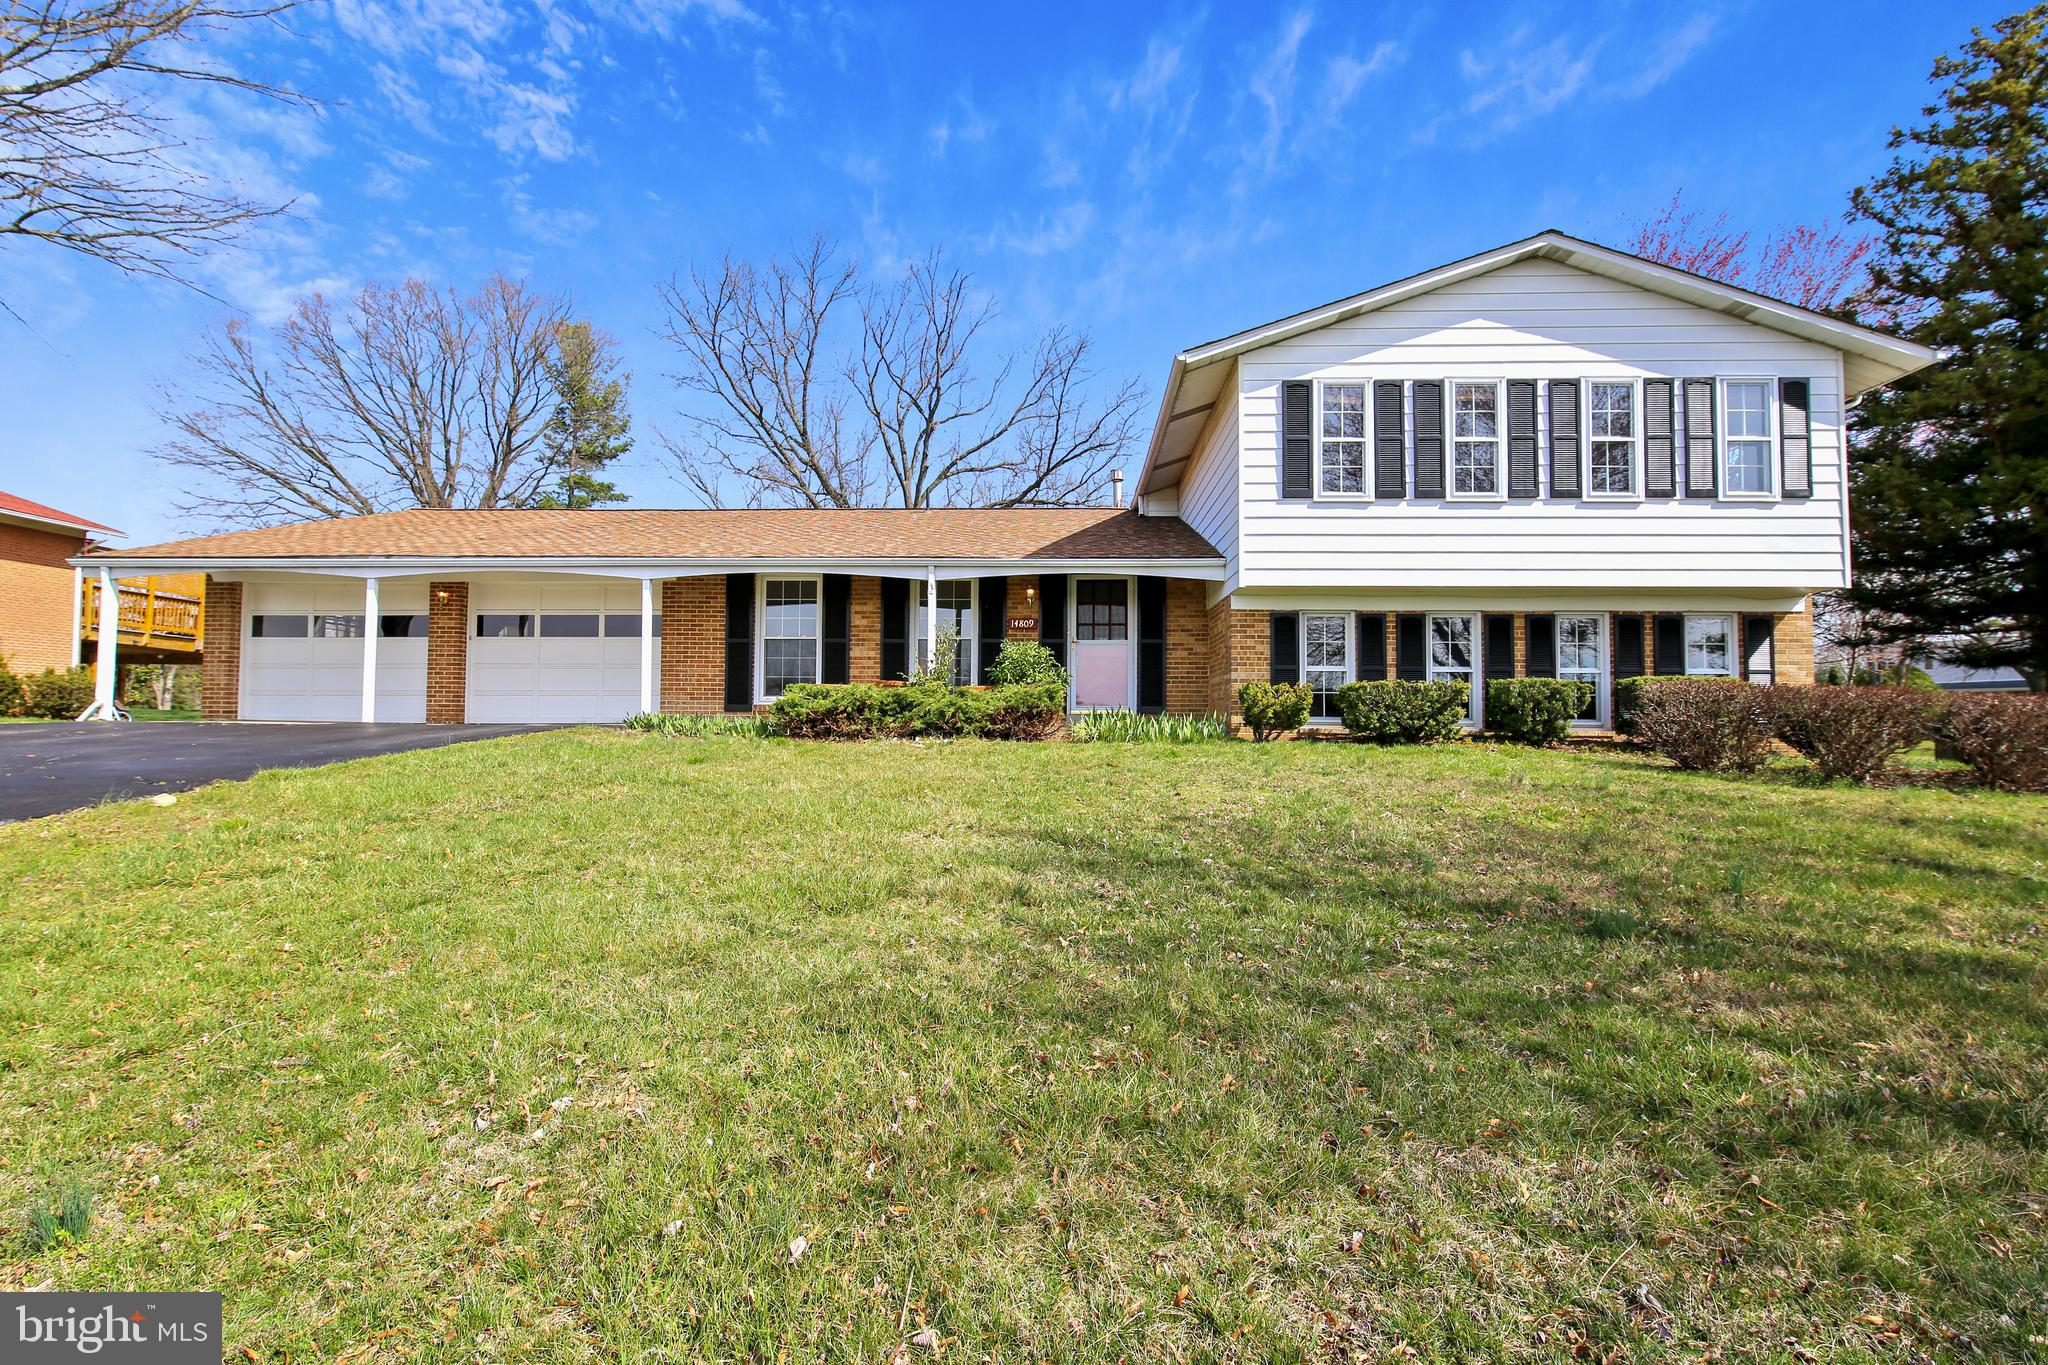 14809 PERRYWOOD DRIVE, BURTONSVILLE, MD 20866